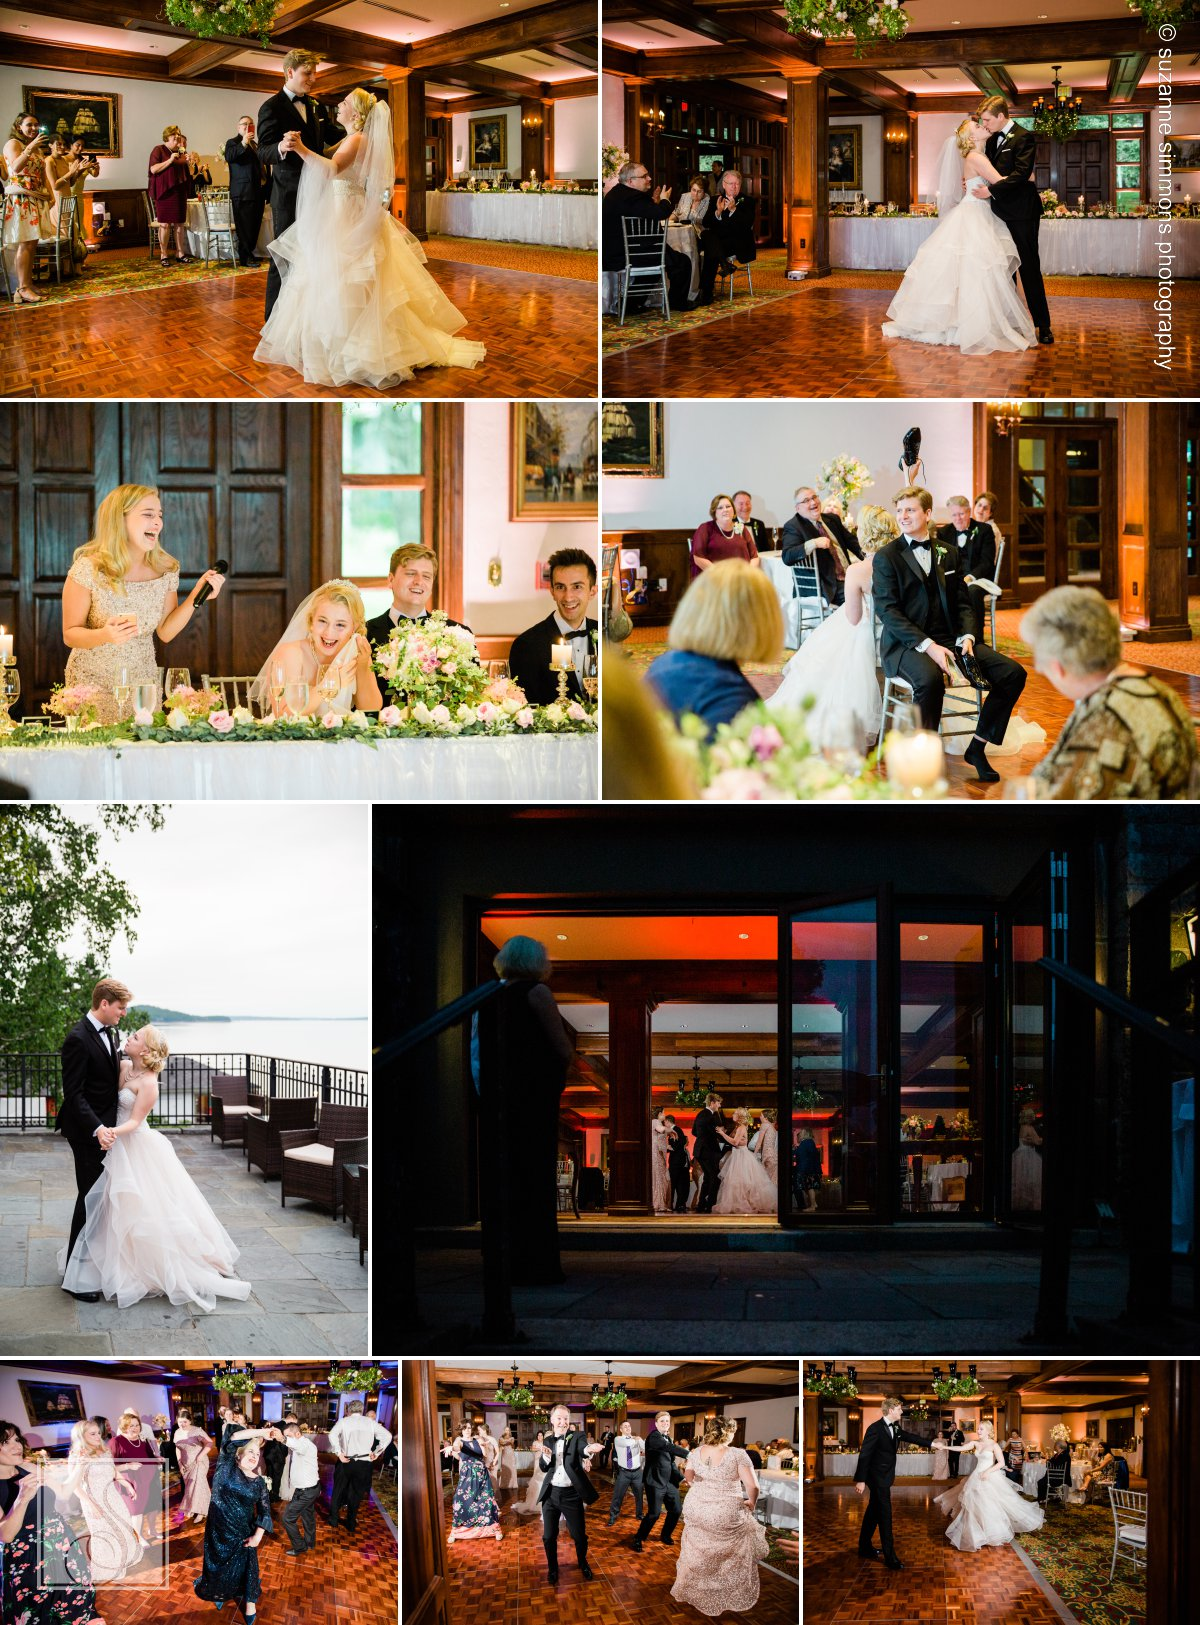 Evening wedding reception at Bar Harbor Regency